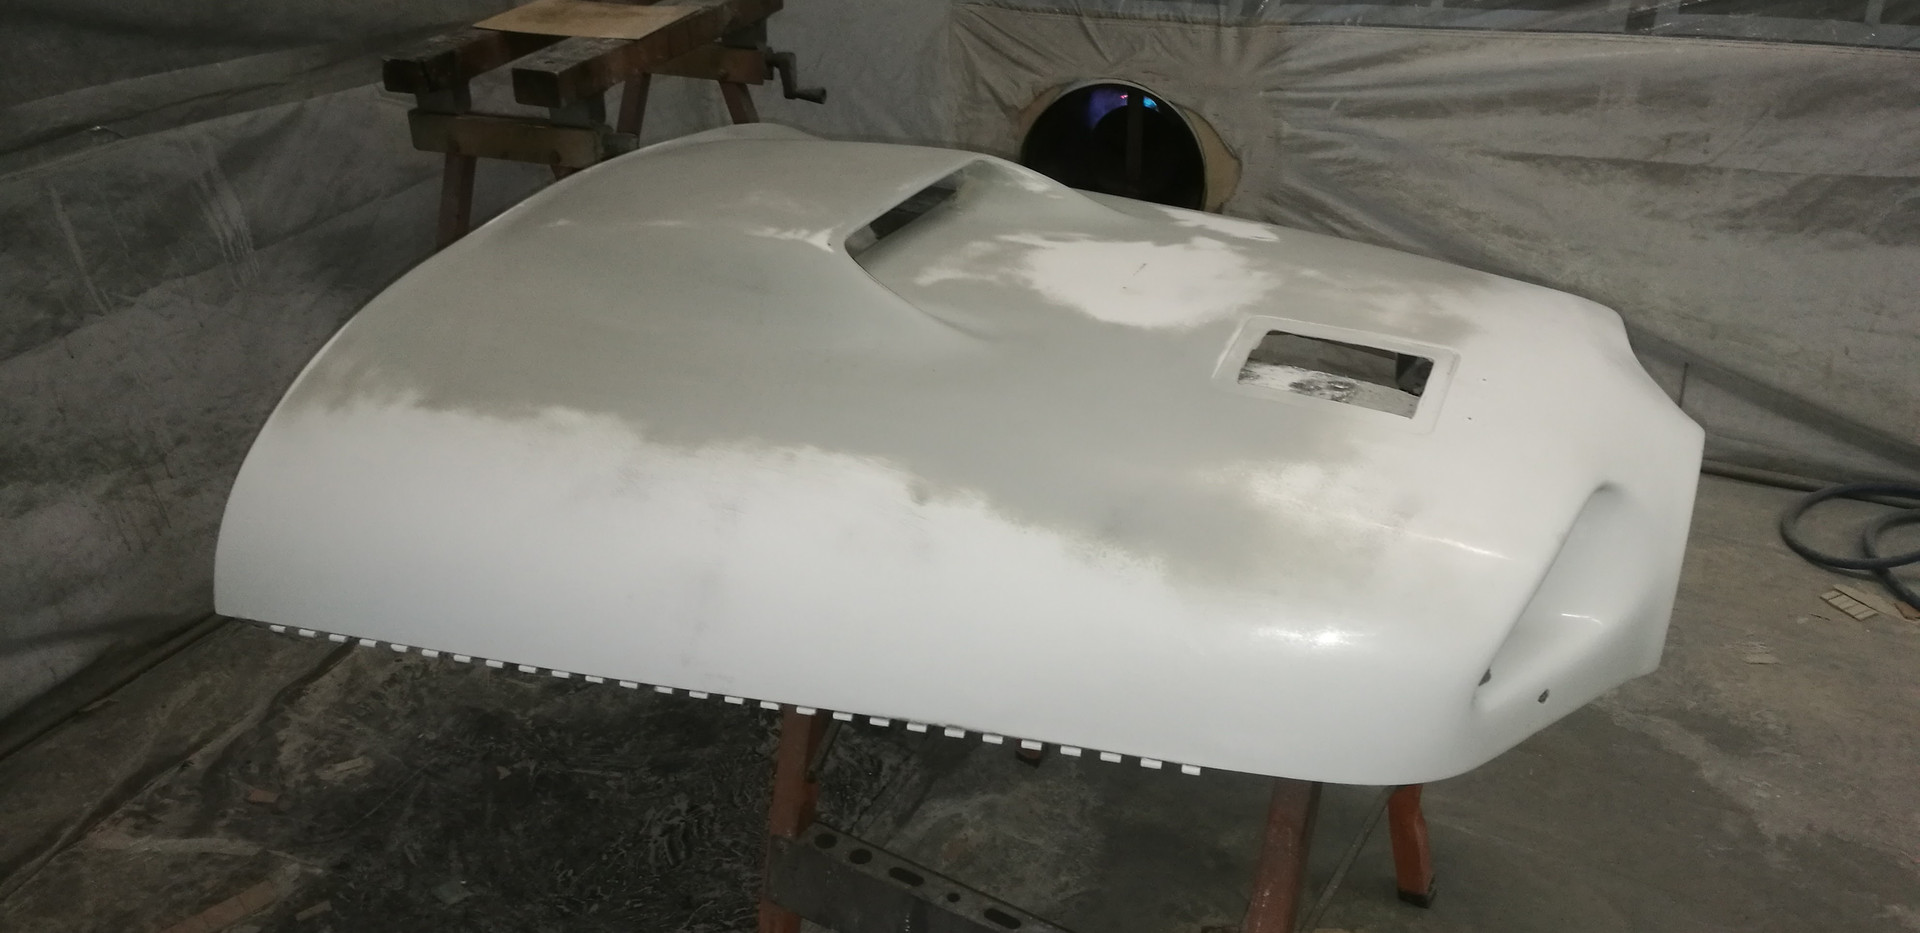 Cowl scoop ready for paint